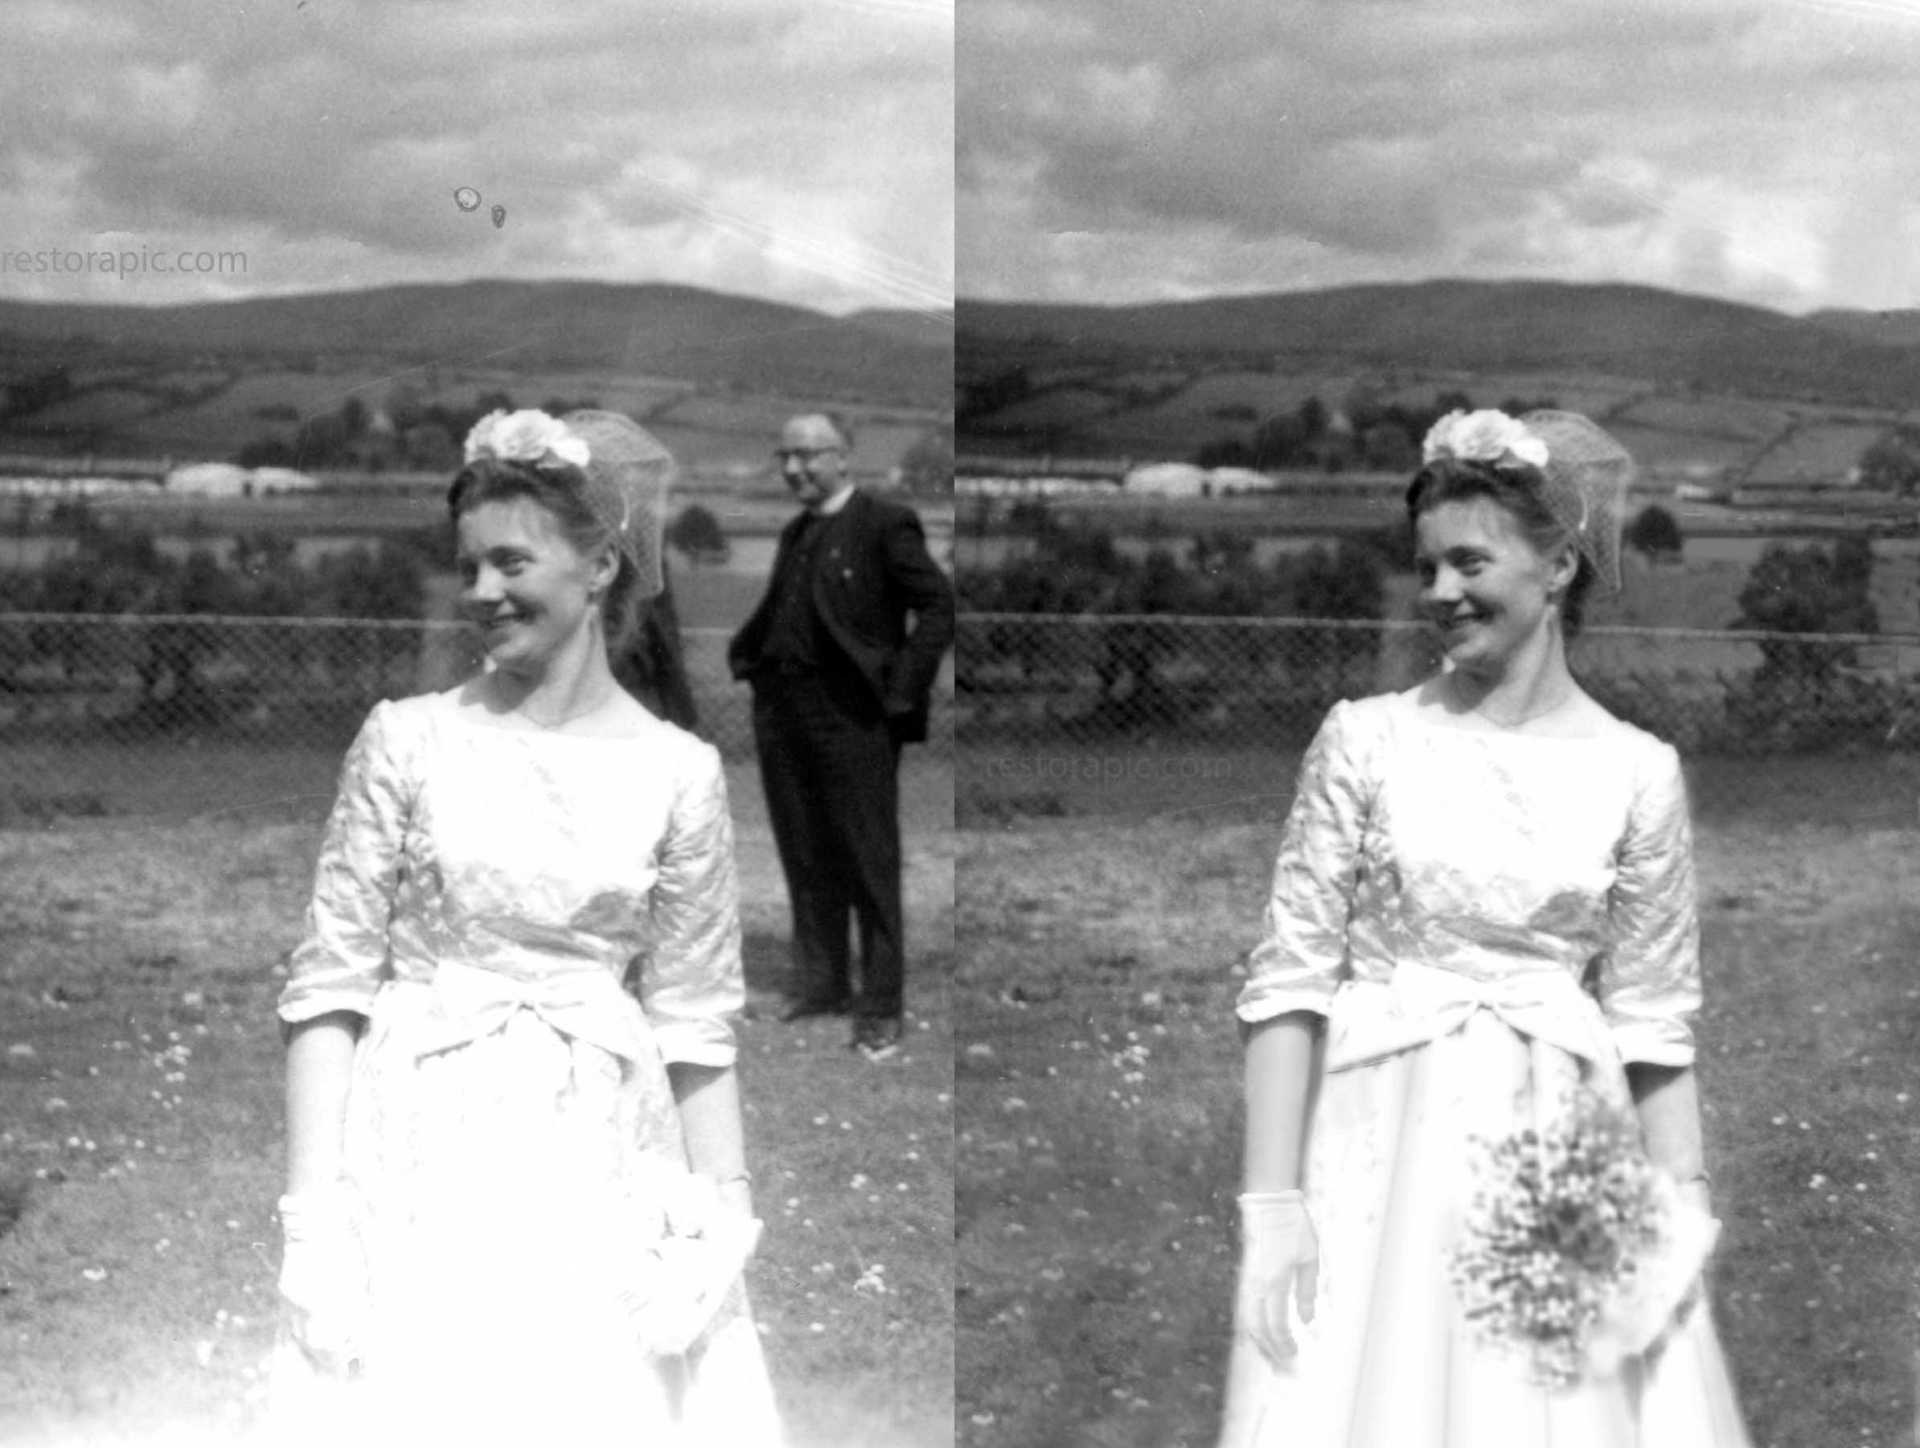 RestorApic_ photo restoration